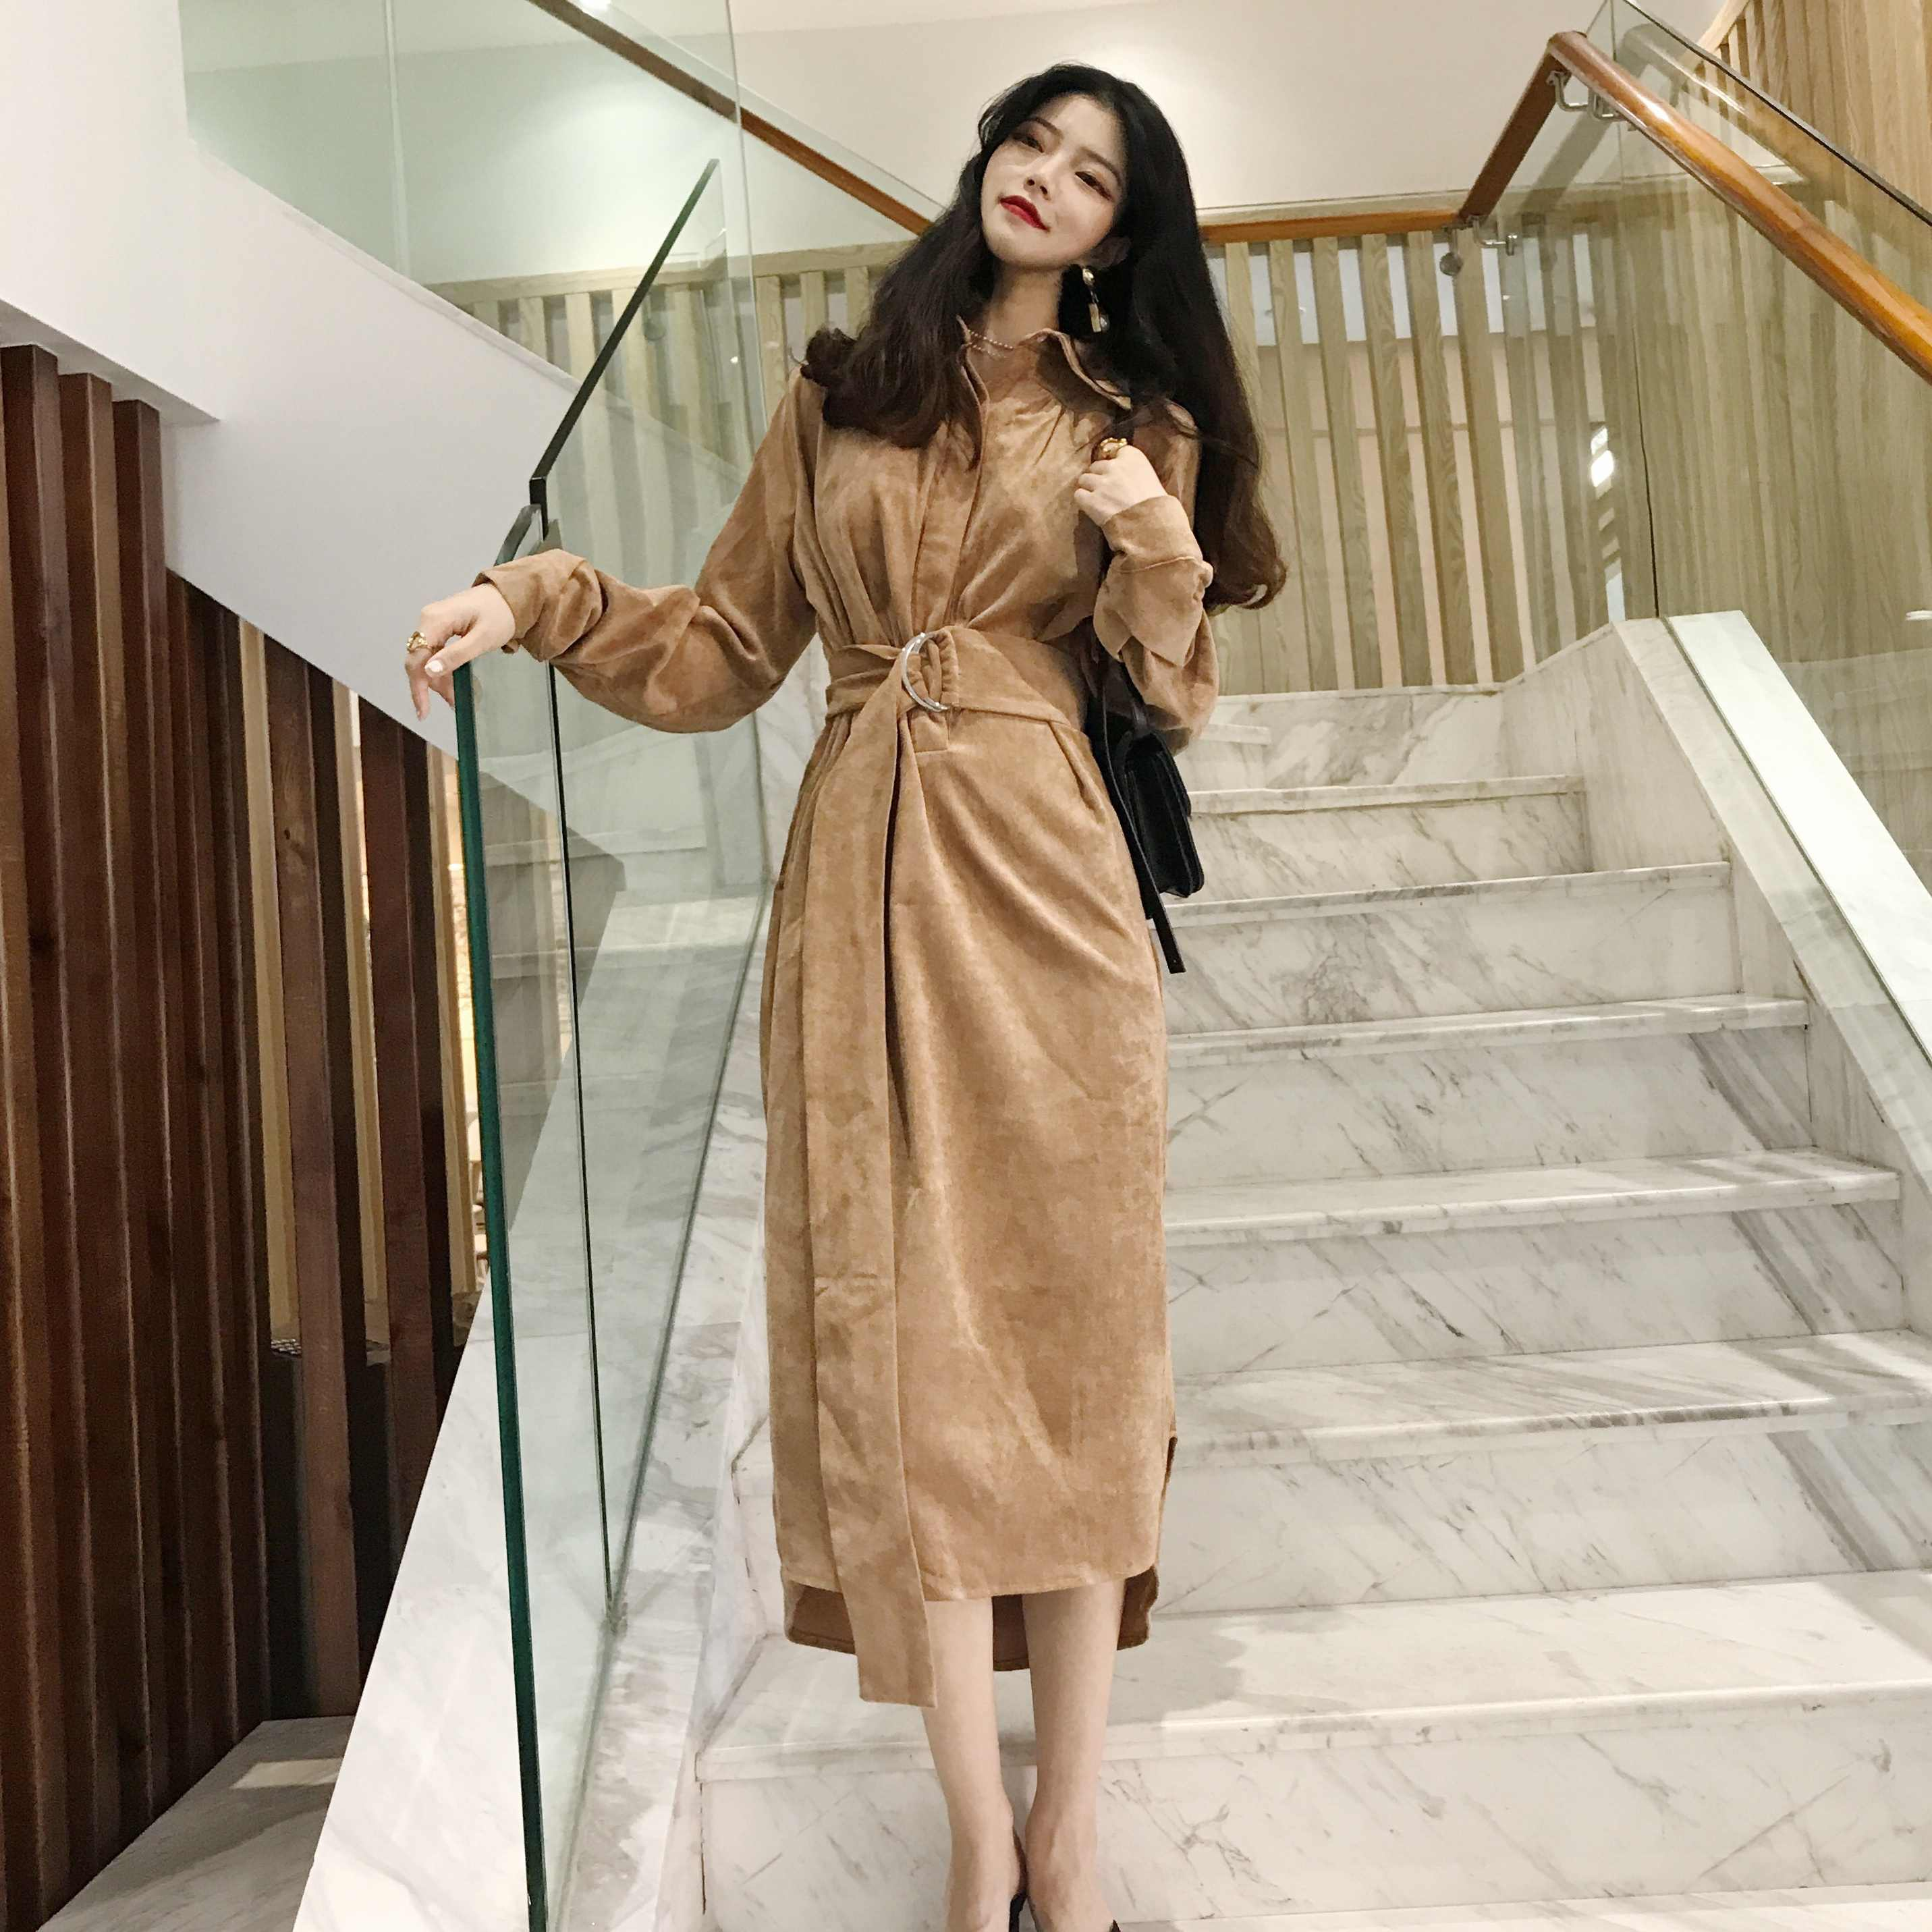 a987b5f00be ... Elegant Buckle Waist Belt Button Turndown Collar Corduroy Split Midi  Long Dress Korean Women Vintage Clothes ...